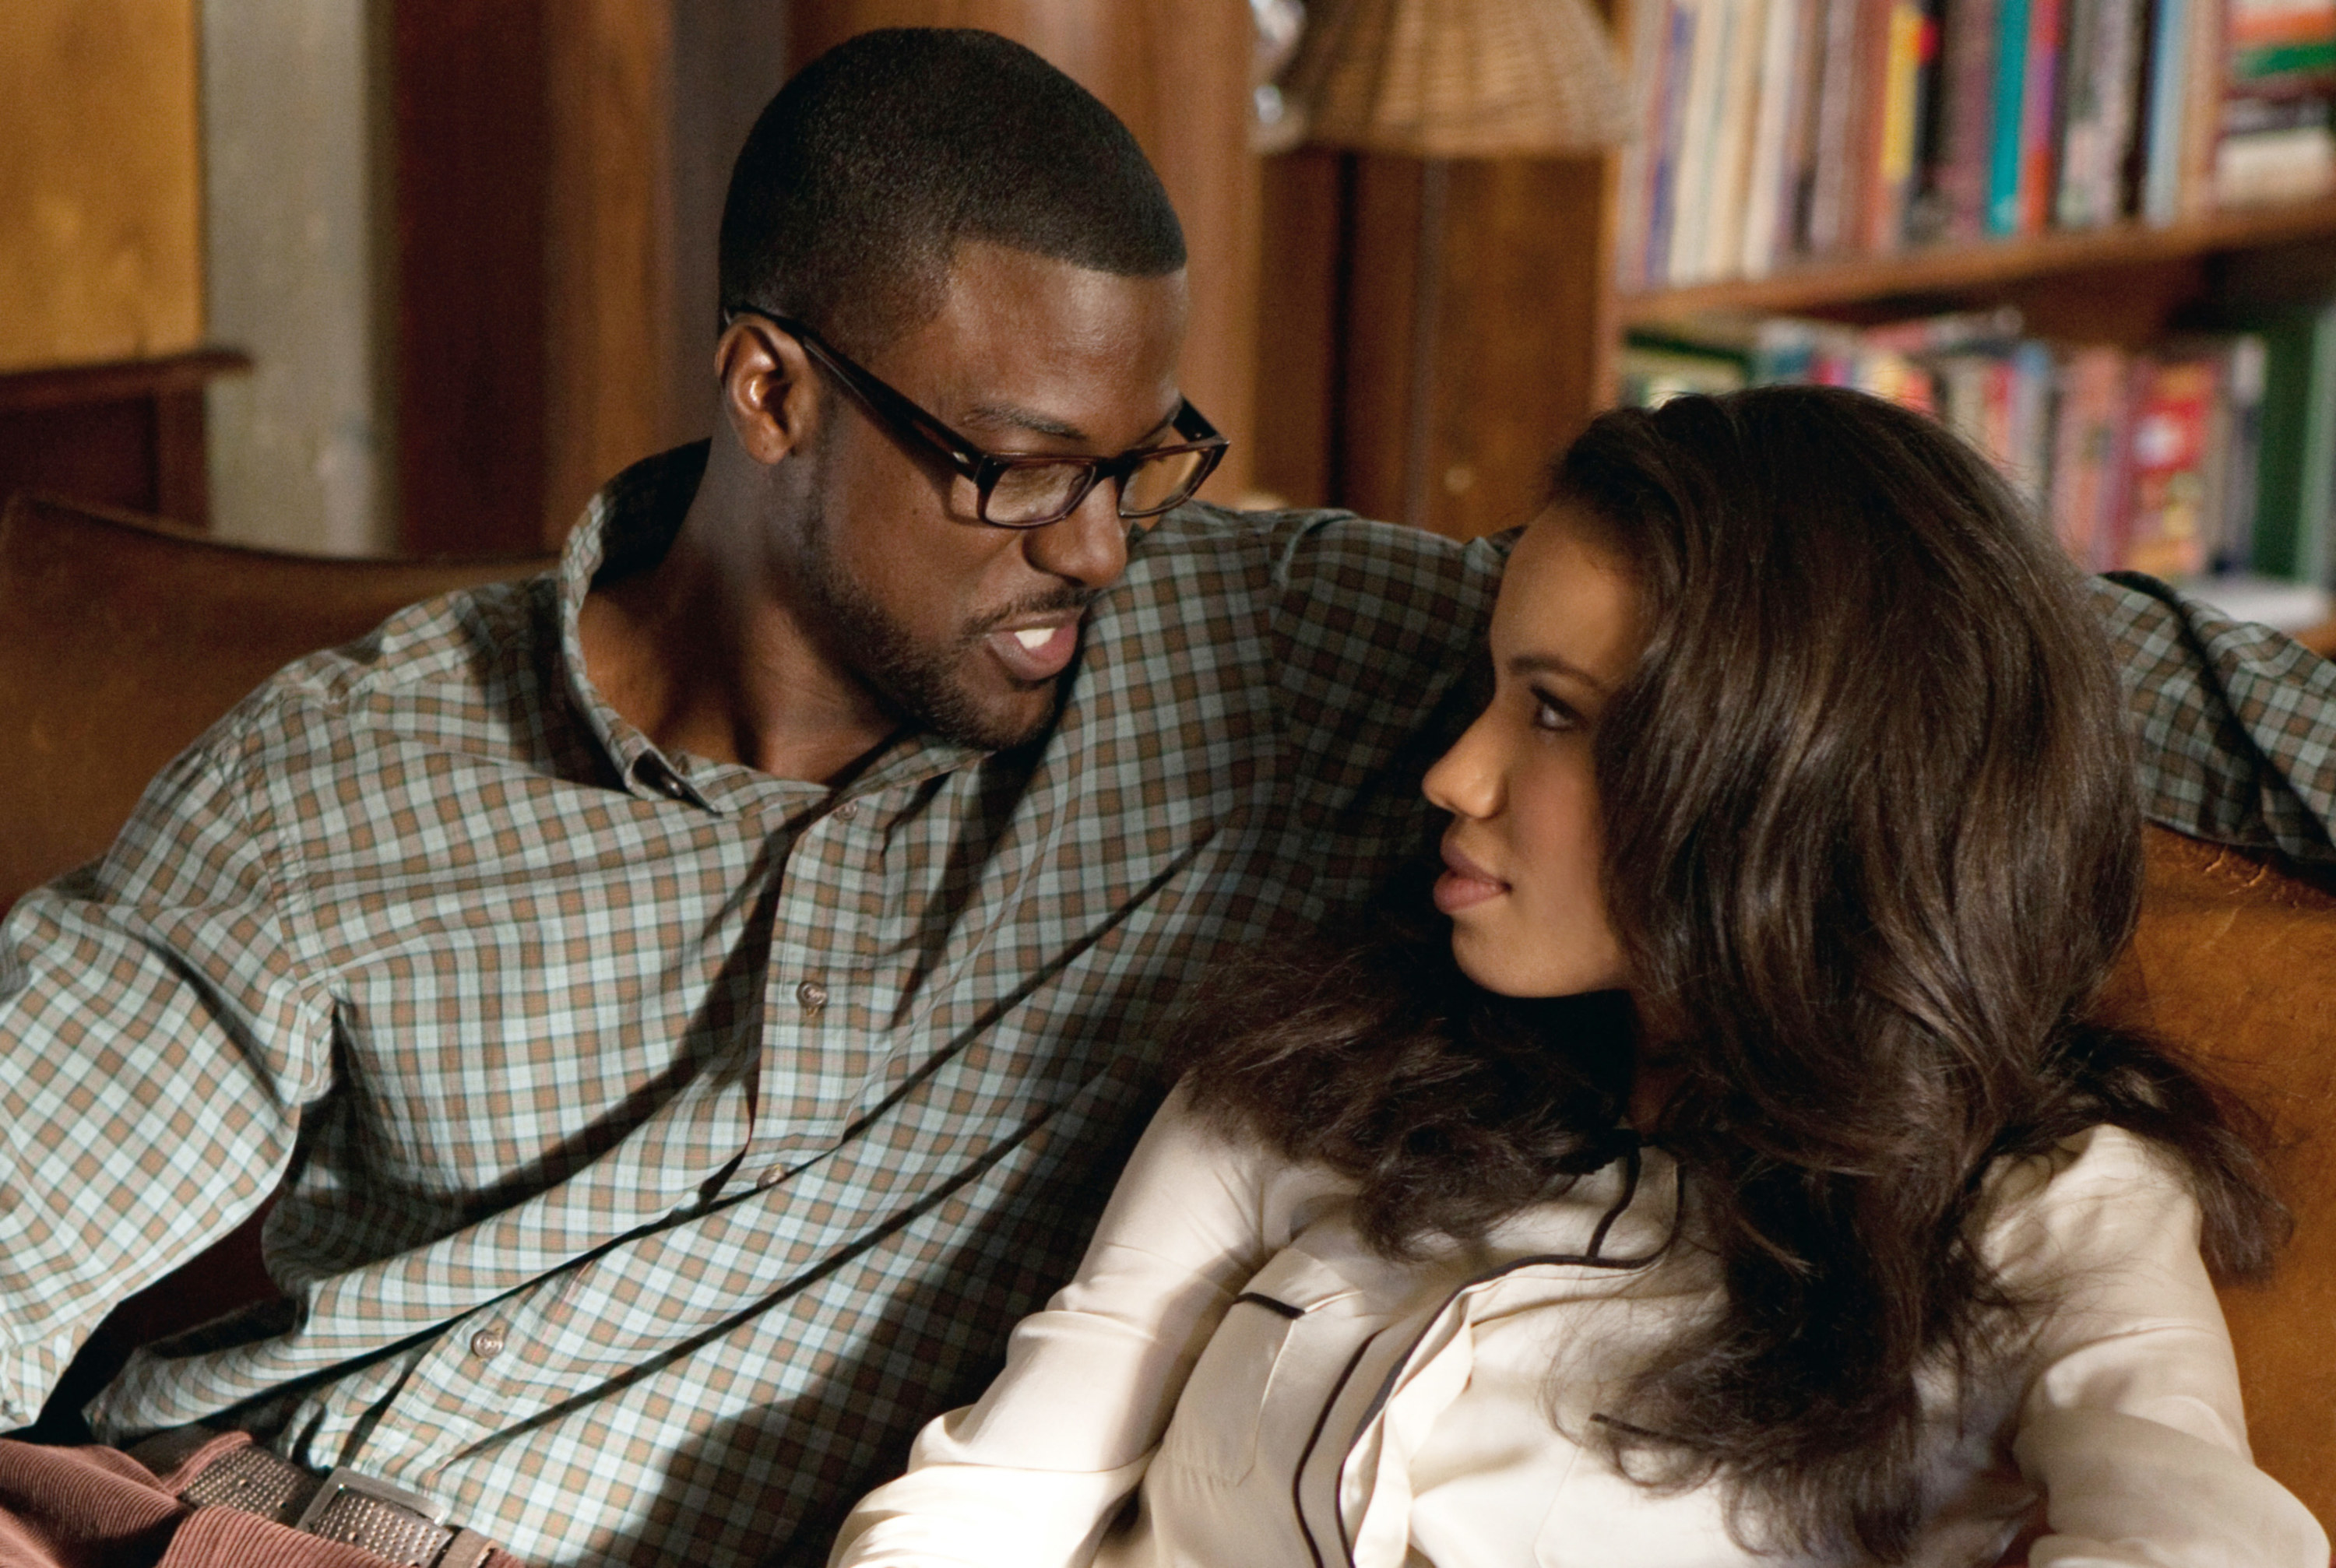 Still from Temptation: Confessions of a Marriage Counselor